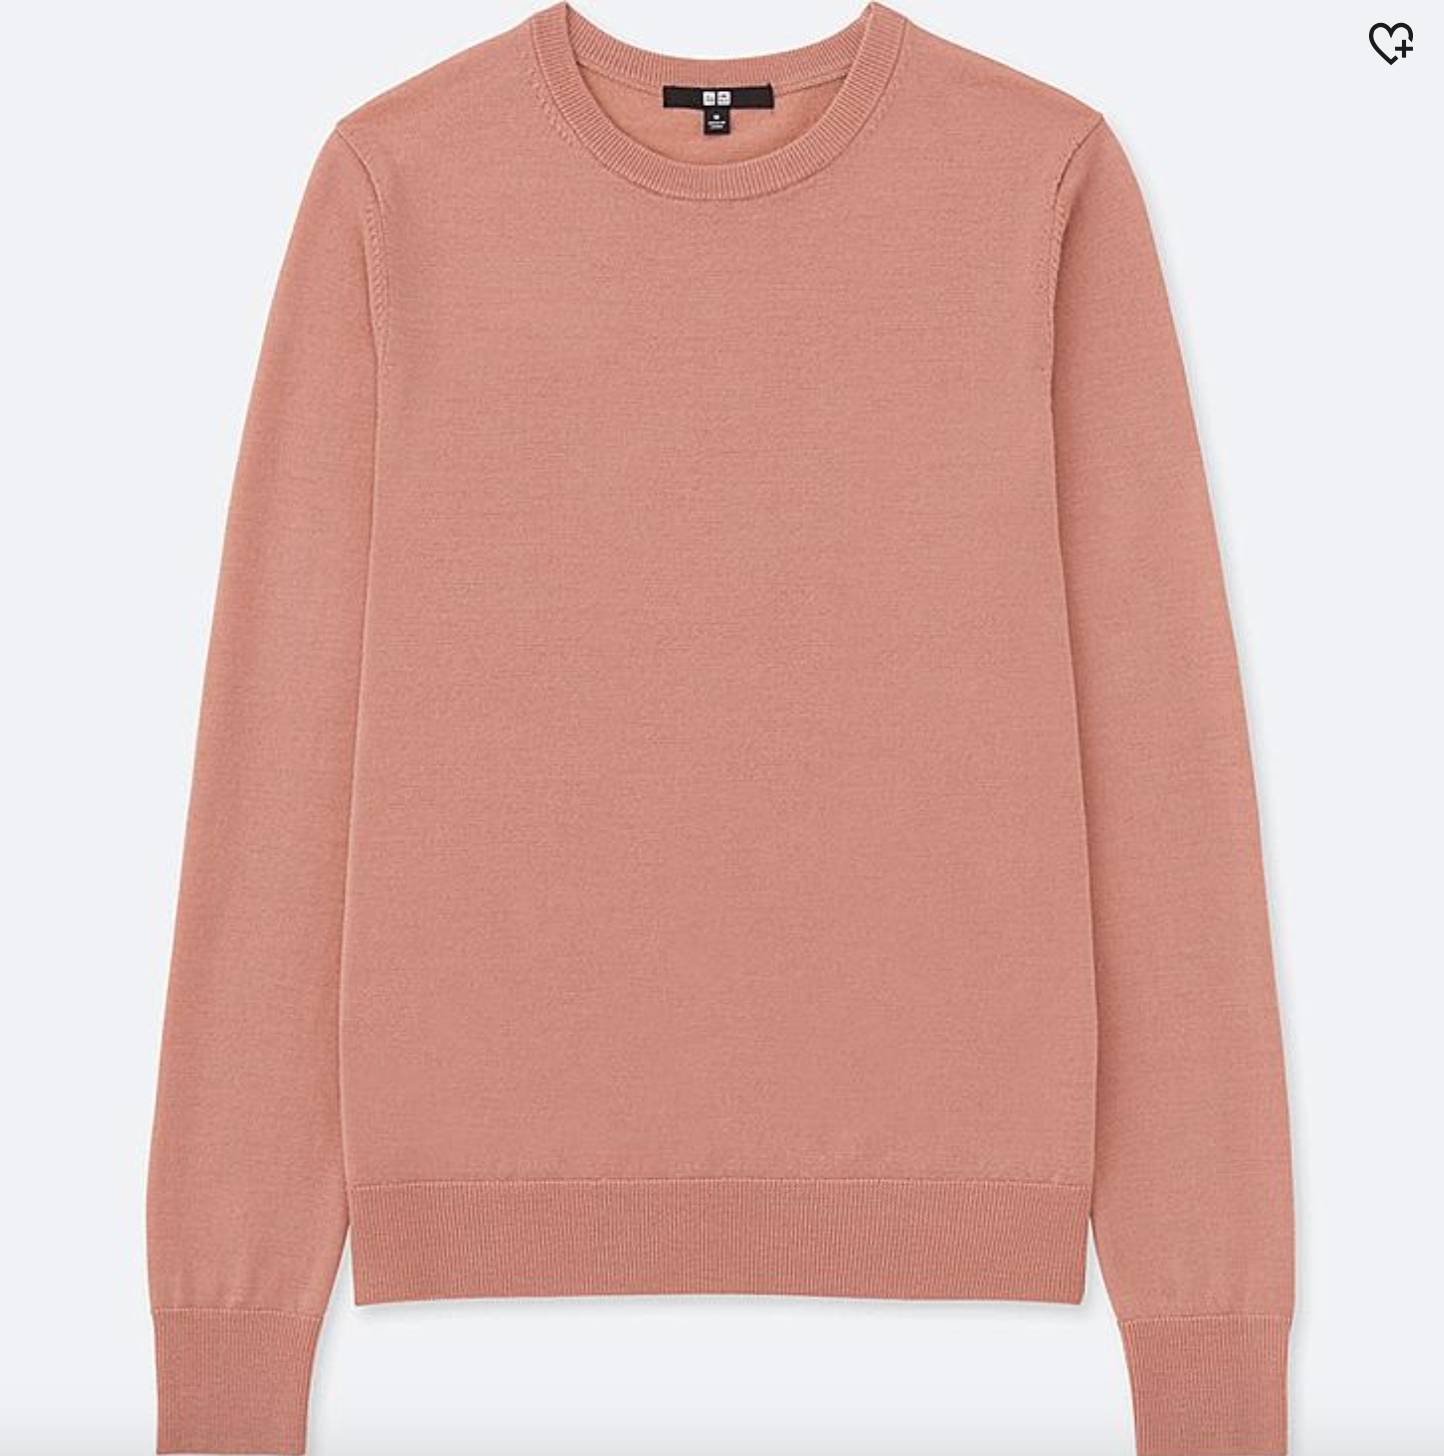 Uniqlo machine-washable merino sweater - This is a staple in my closet in three different colors. It washes so well and looks very flattering.